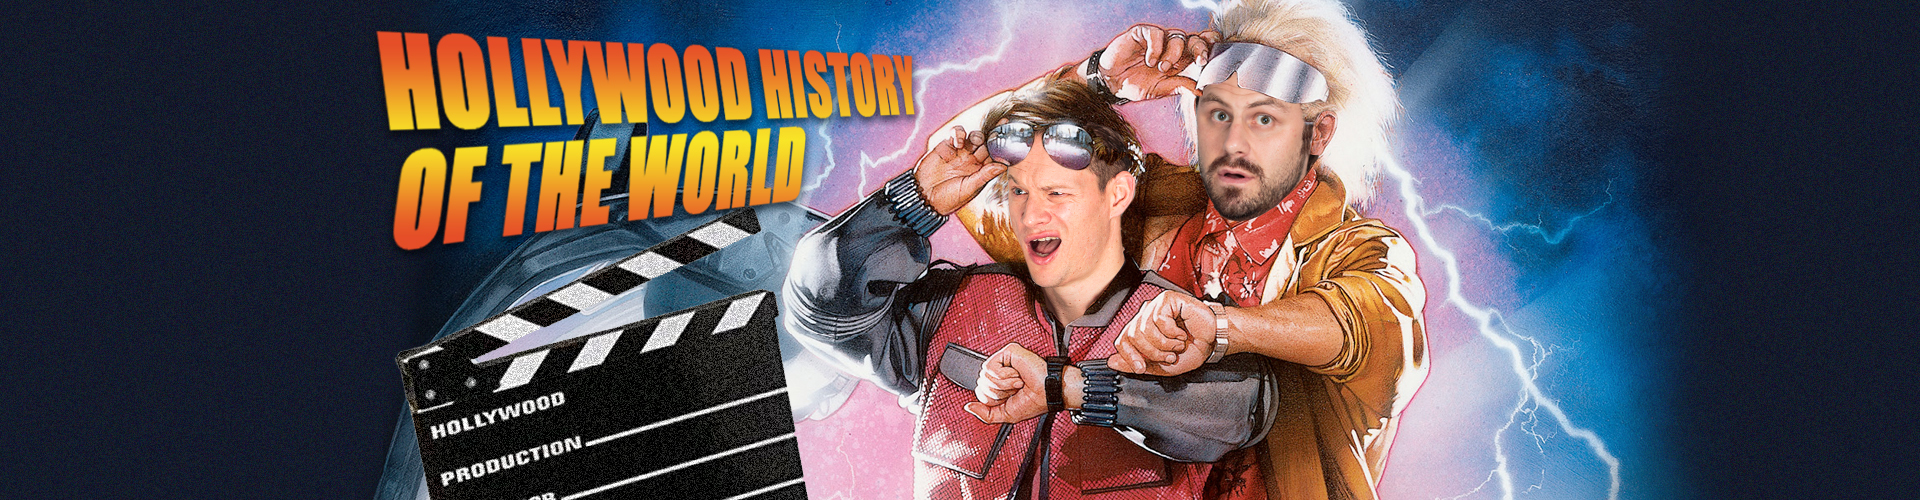 Hollywood History of the World header image